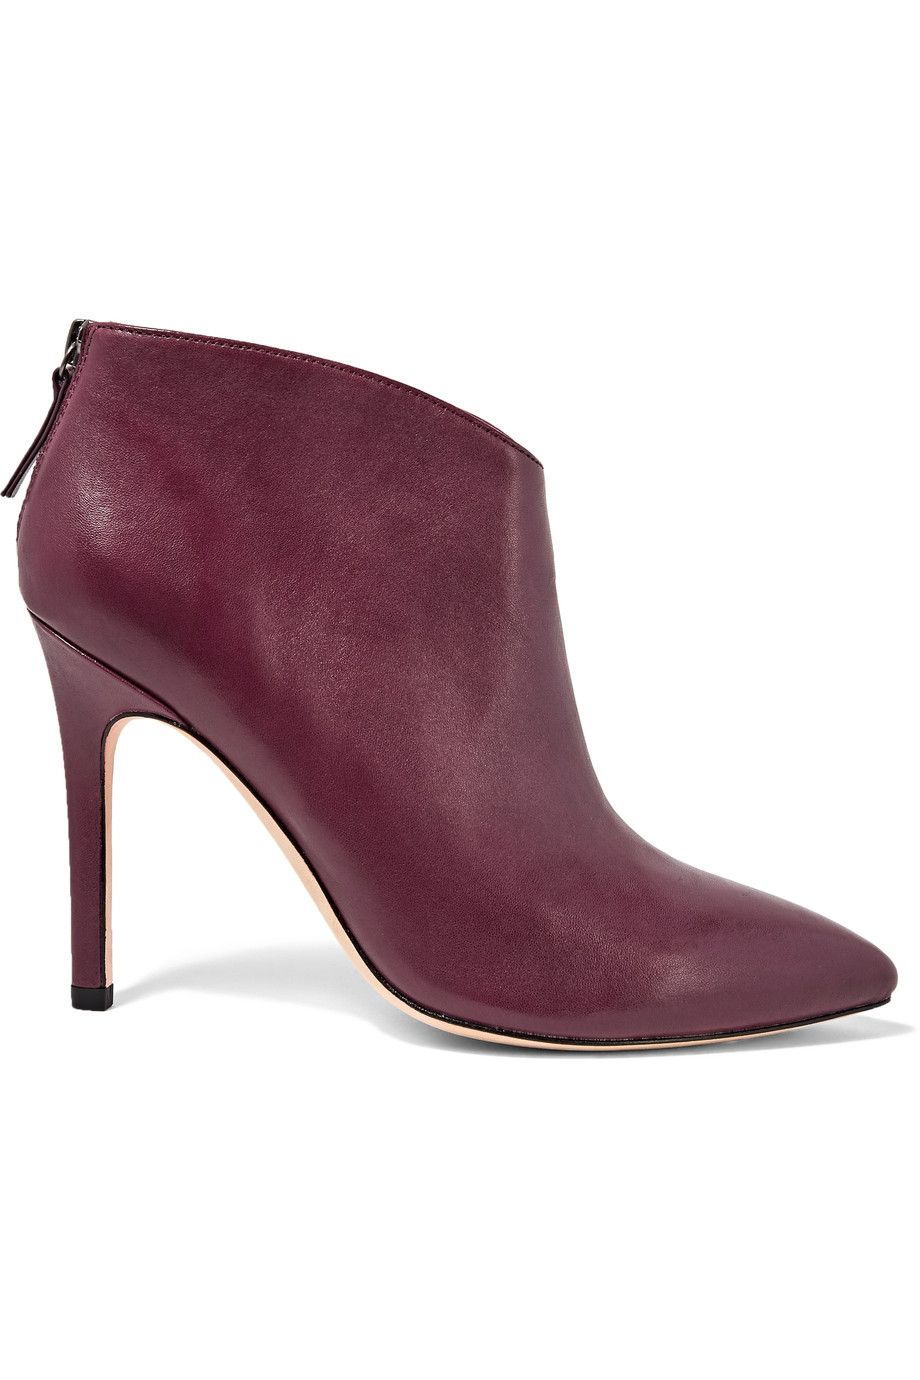 FOOTWEAR - Ankle boots Halston Heritage t7xHGOfp